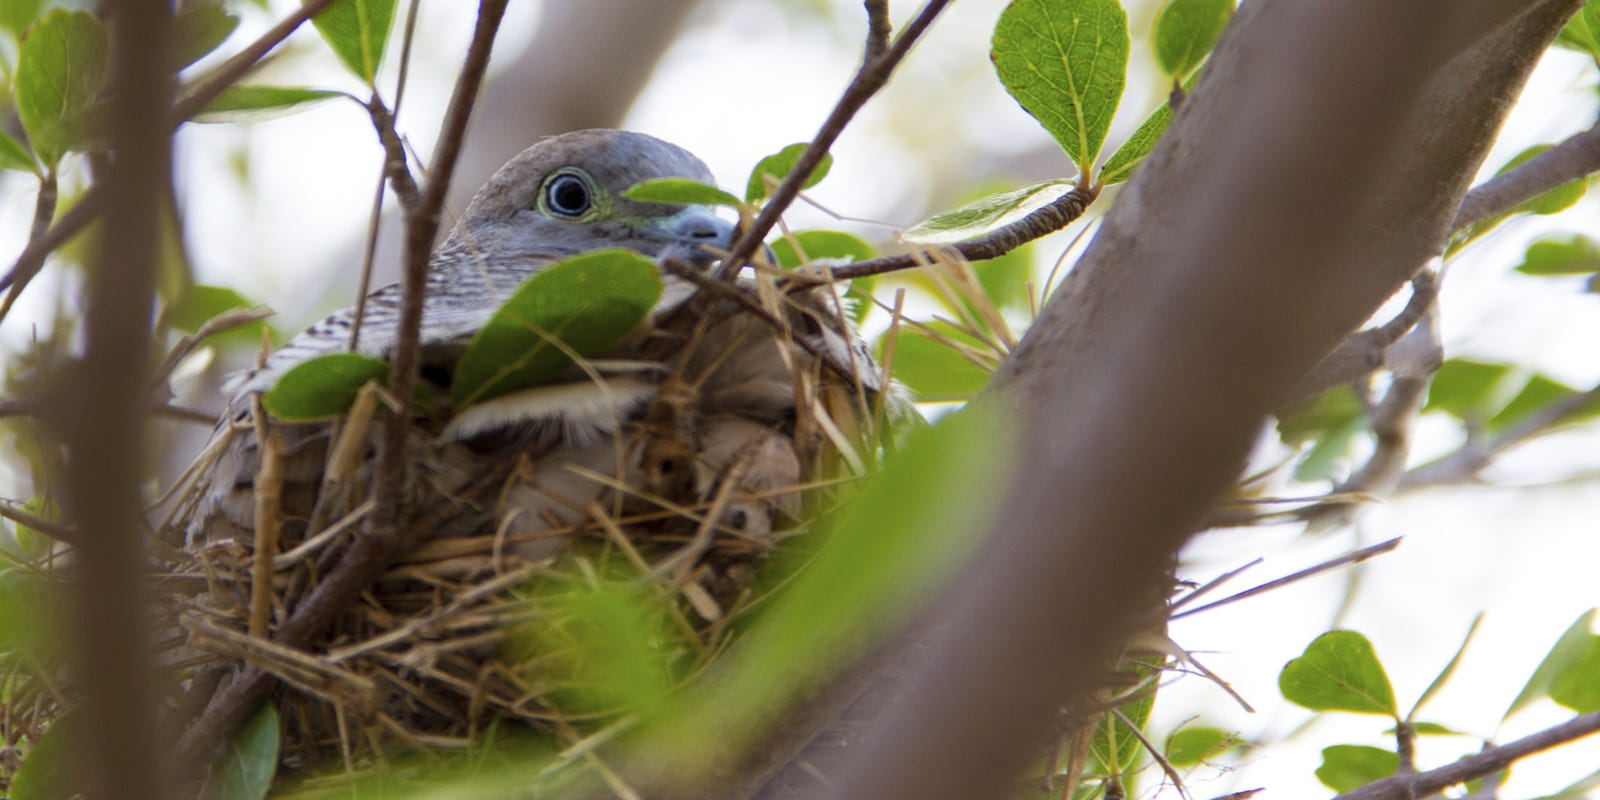 Birds Produce Amazing Architectural Feats With Nests